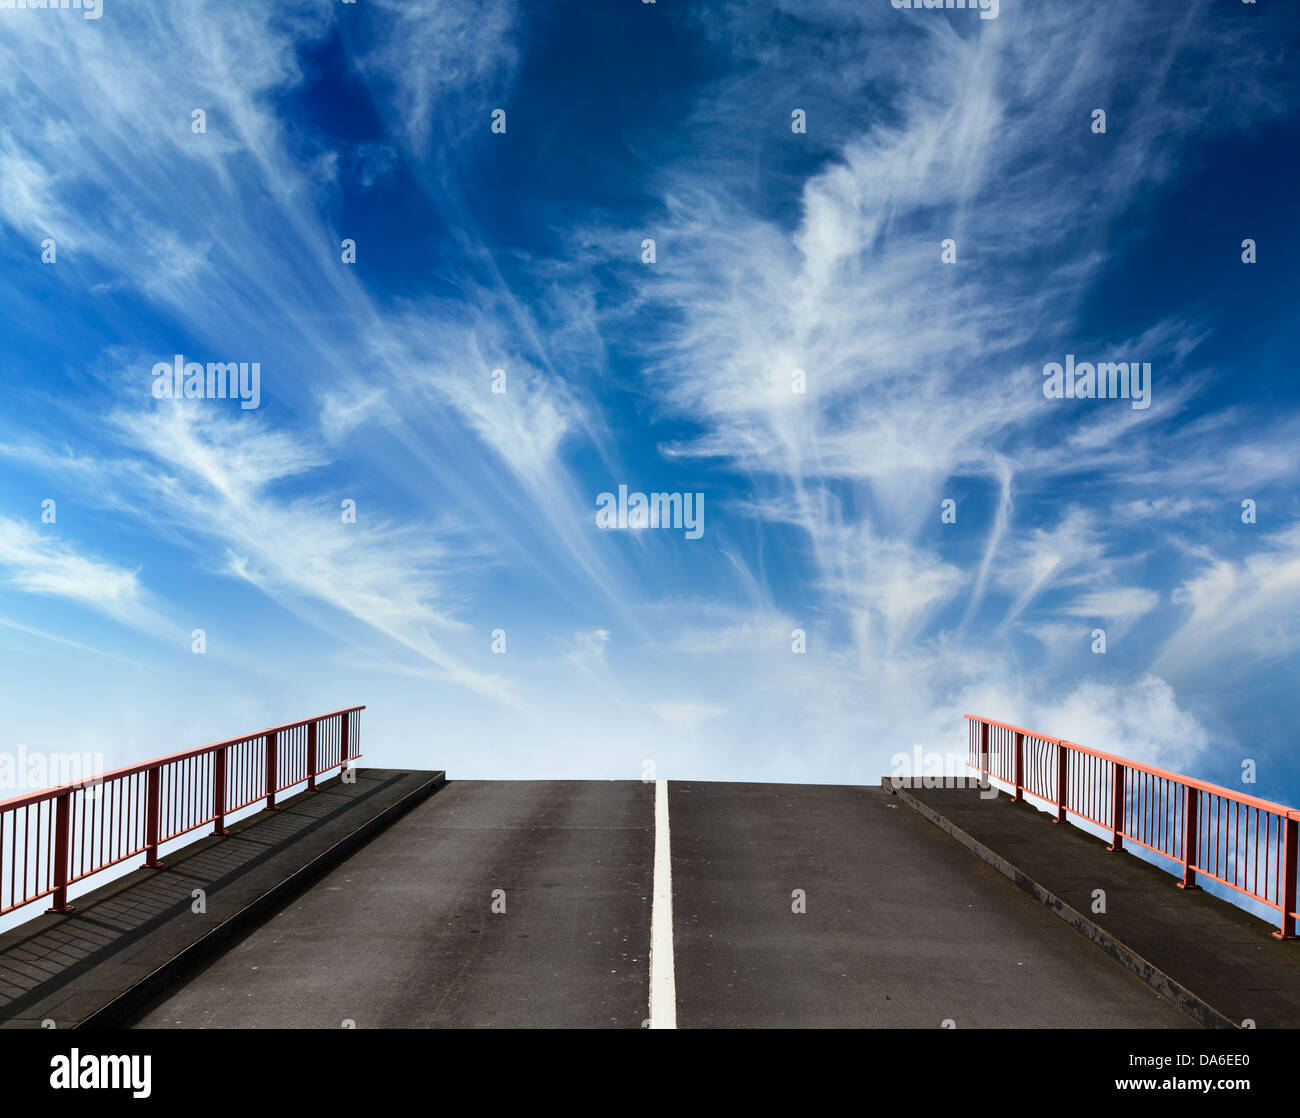 Asphalt road going into sky with clouds - Stock Image